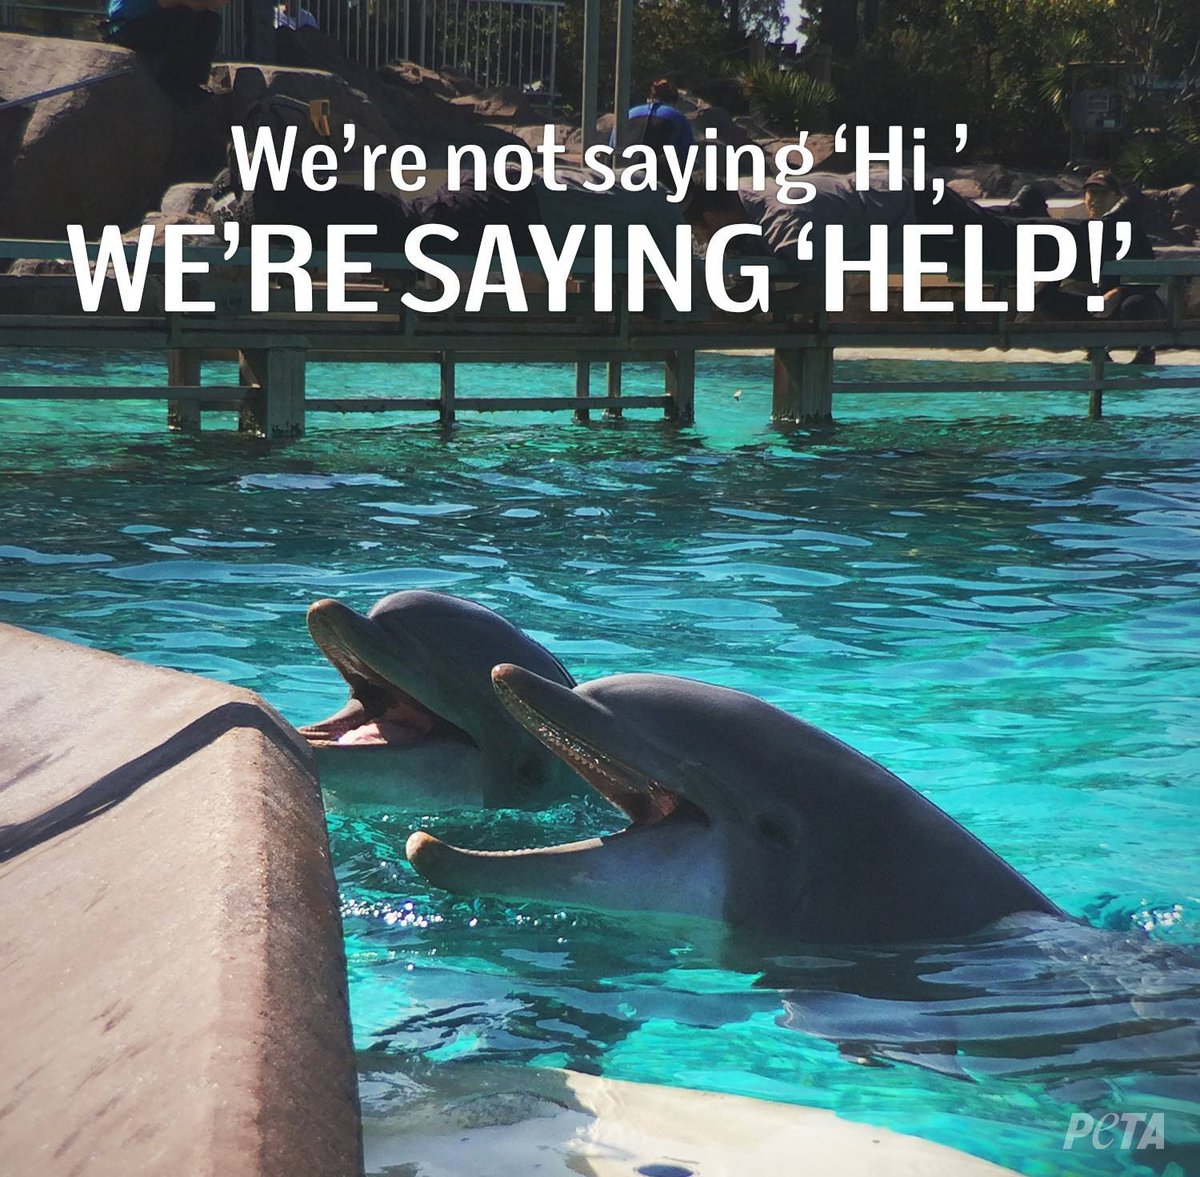 #EmptyTheTanks https://t.co/P933cjFpdj